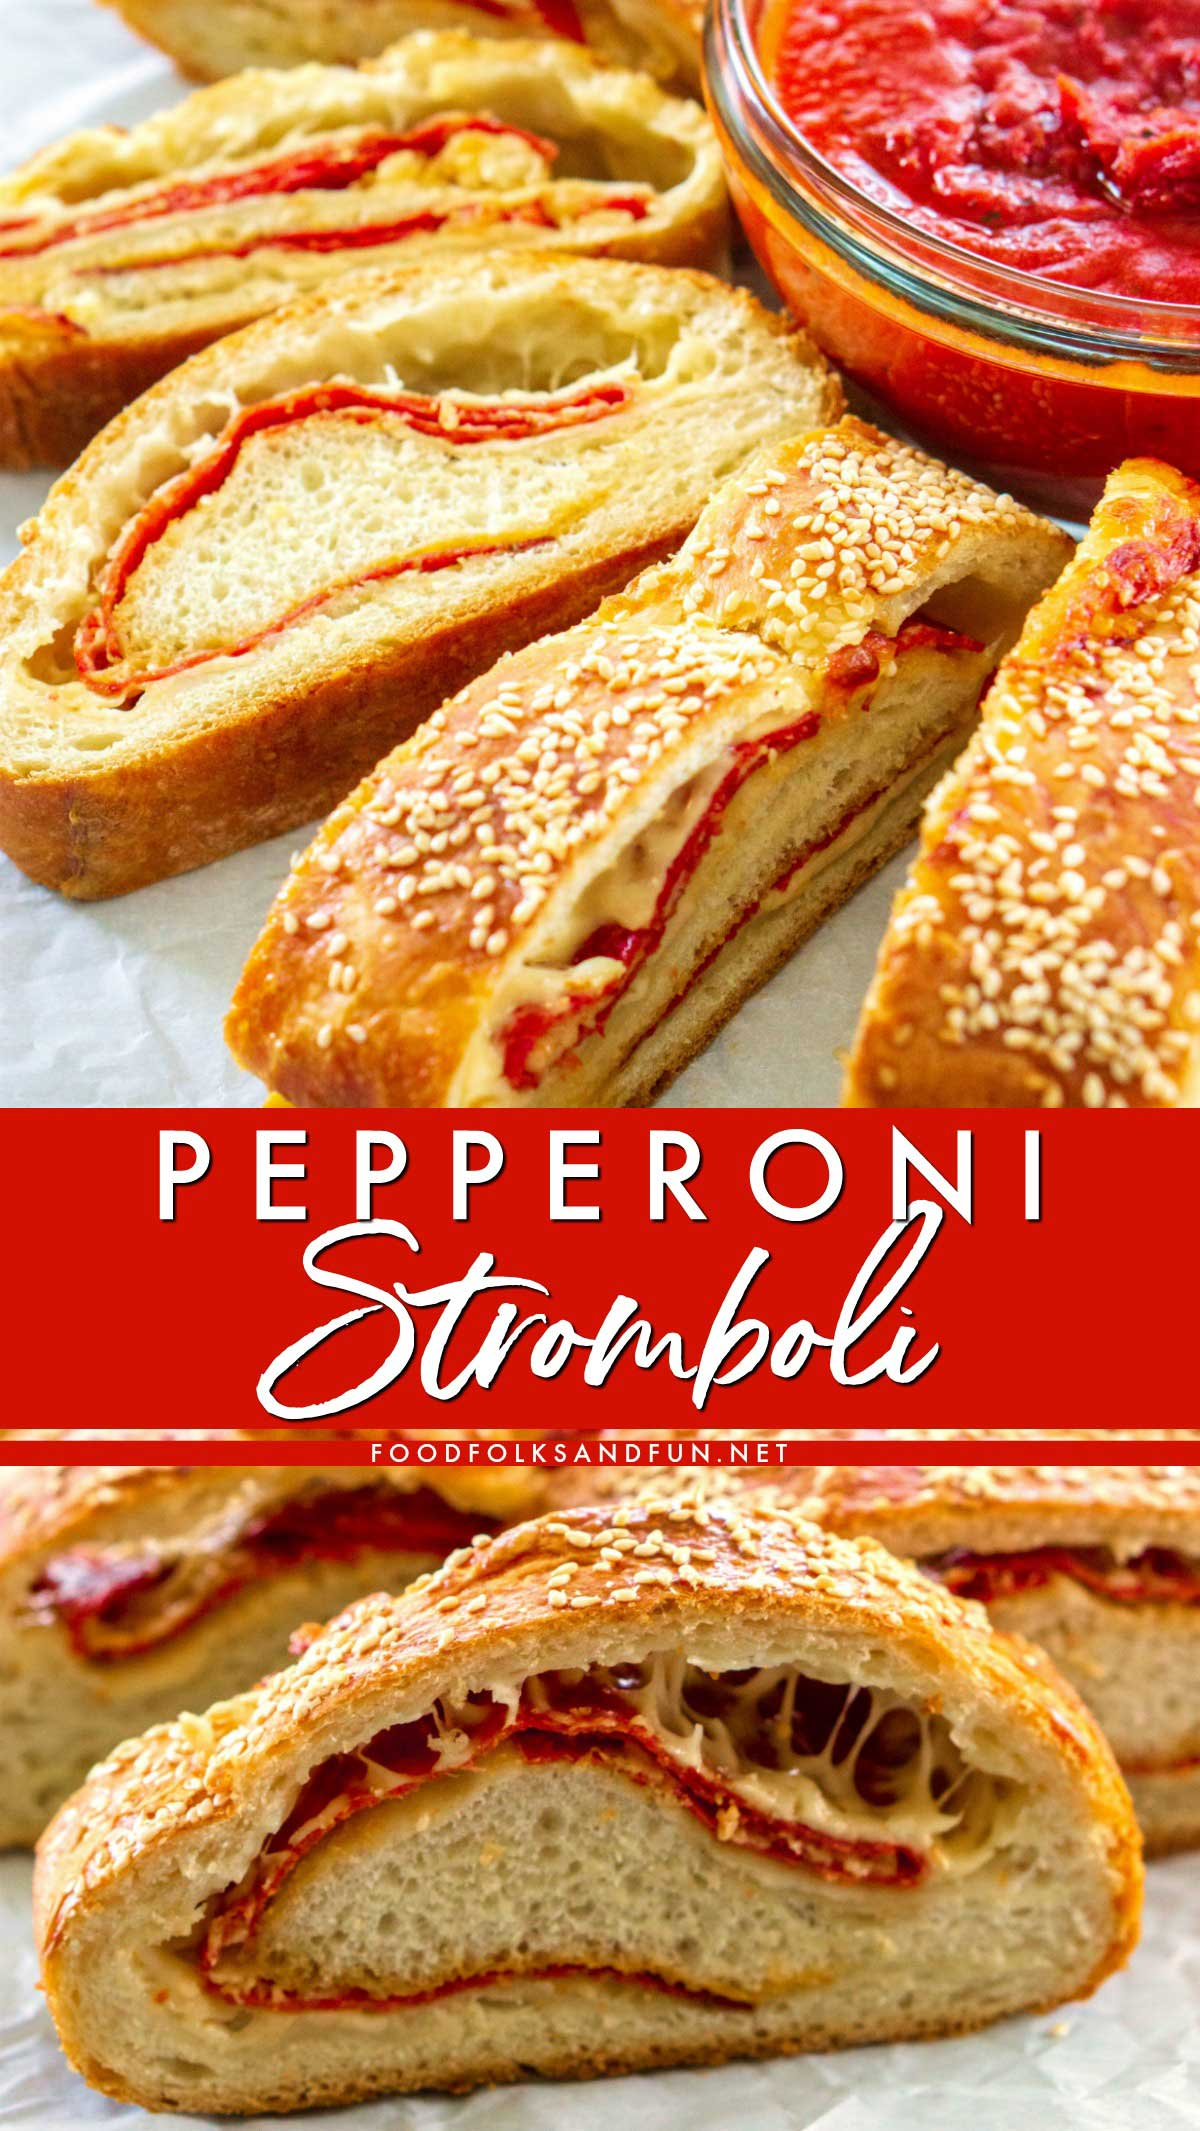 This Stromboli recipe is simple to make and easy to customize to your taste. Come see how to make stromboli in this easy-to-follow recipe!  via @foodfolksandfun